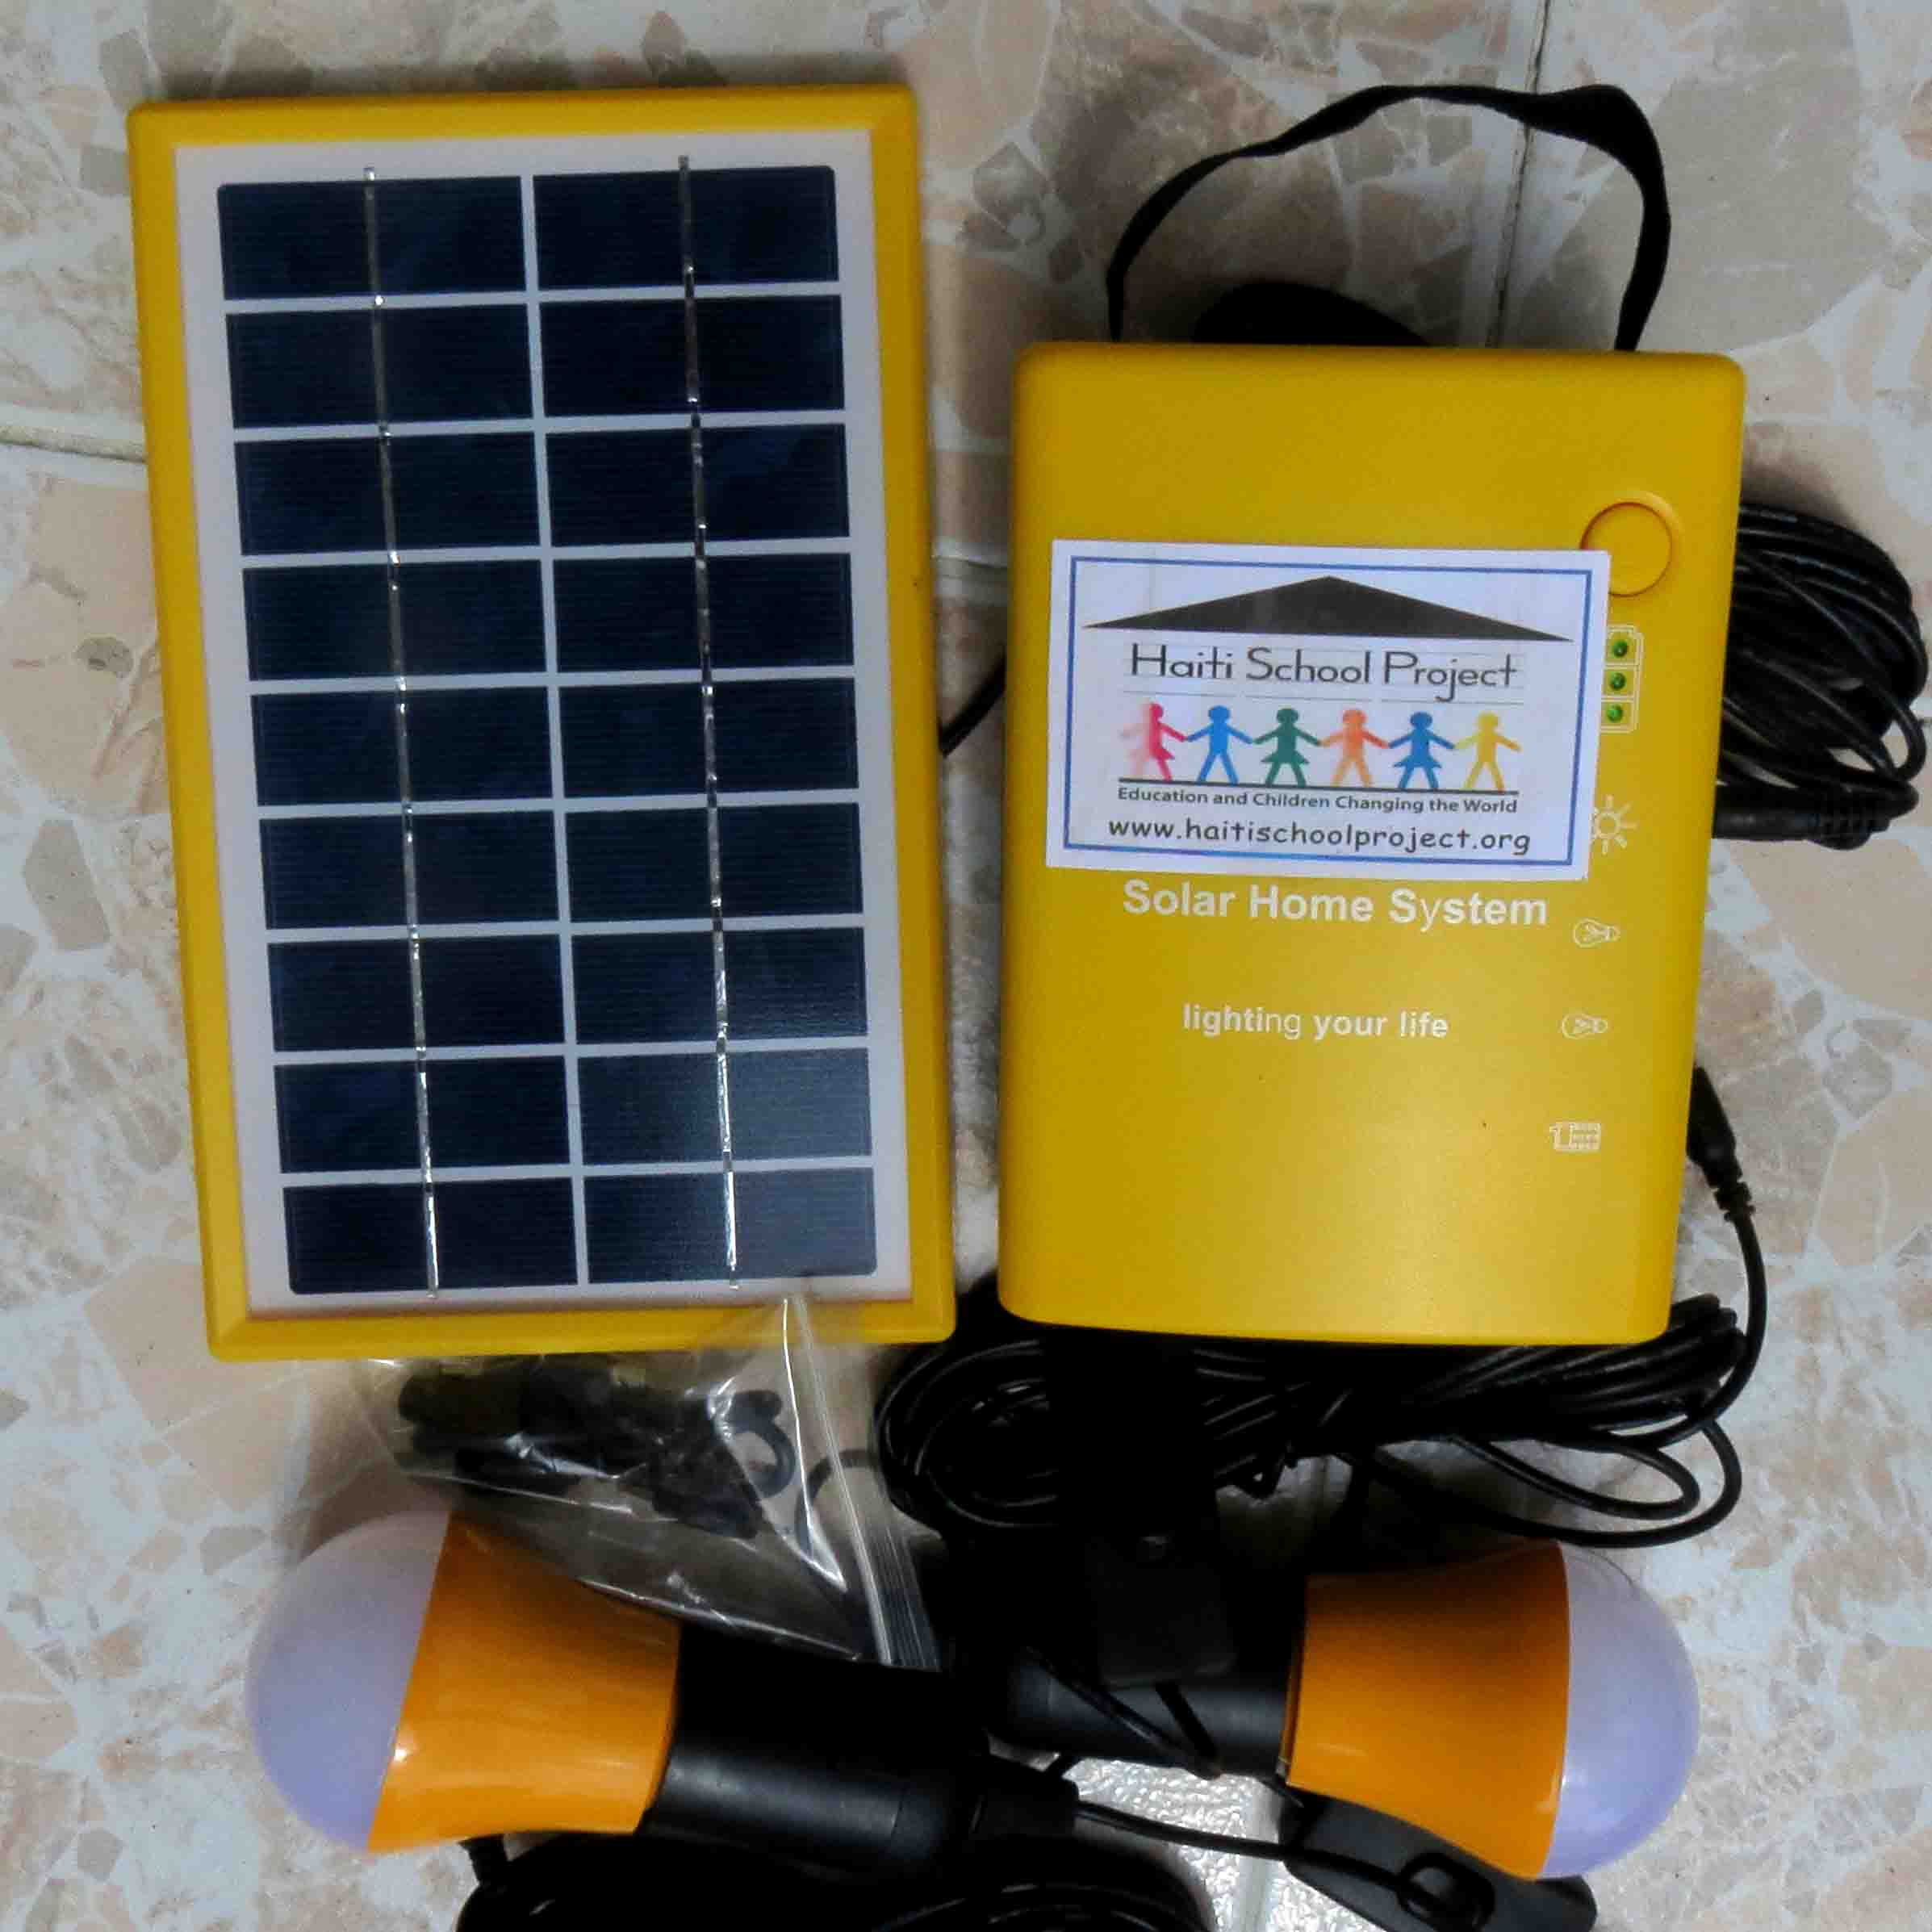 solar power working laptop from battery year source stopped batteries this s when light his father old